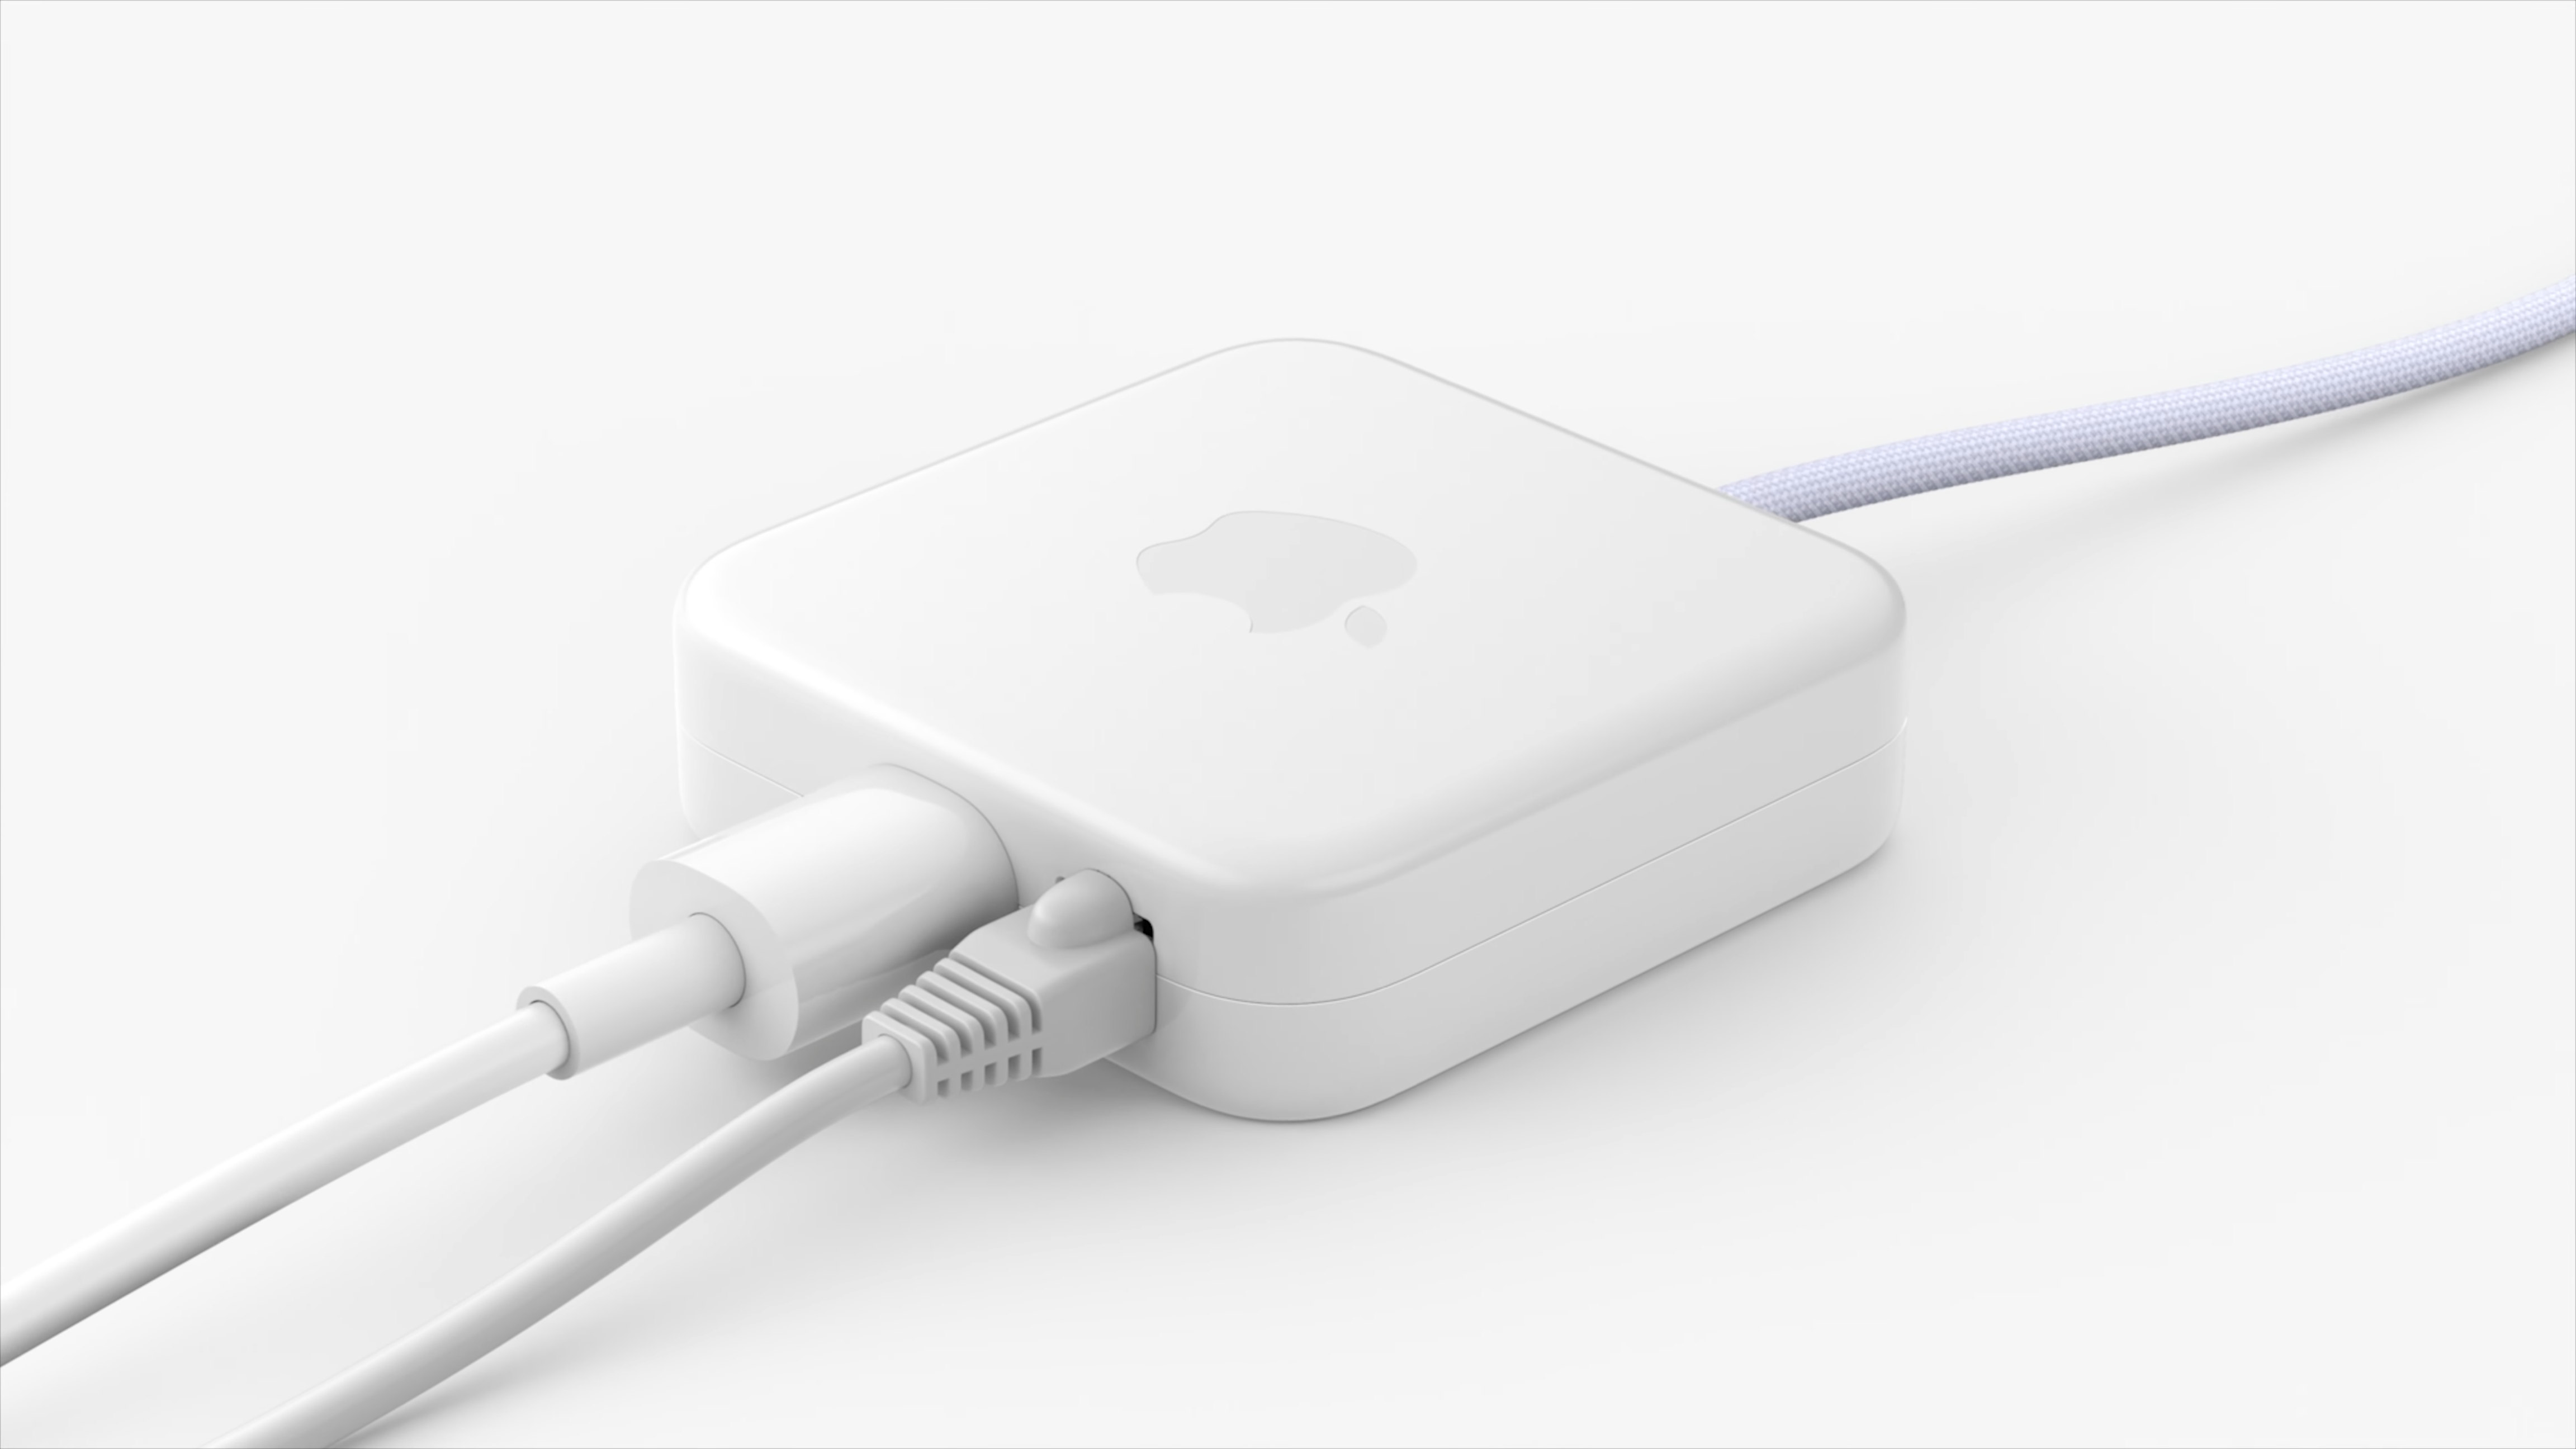 M1 iMac's new power brick with integrated ethernet